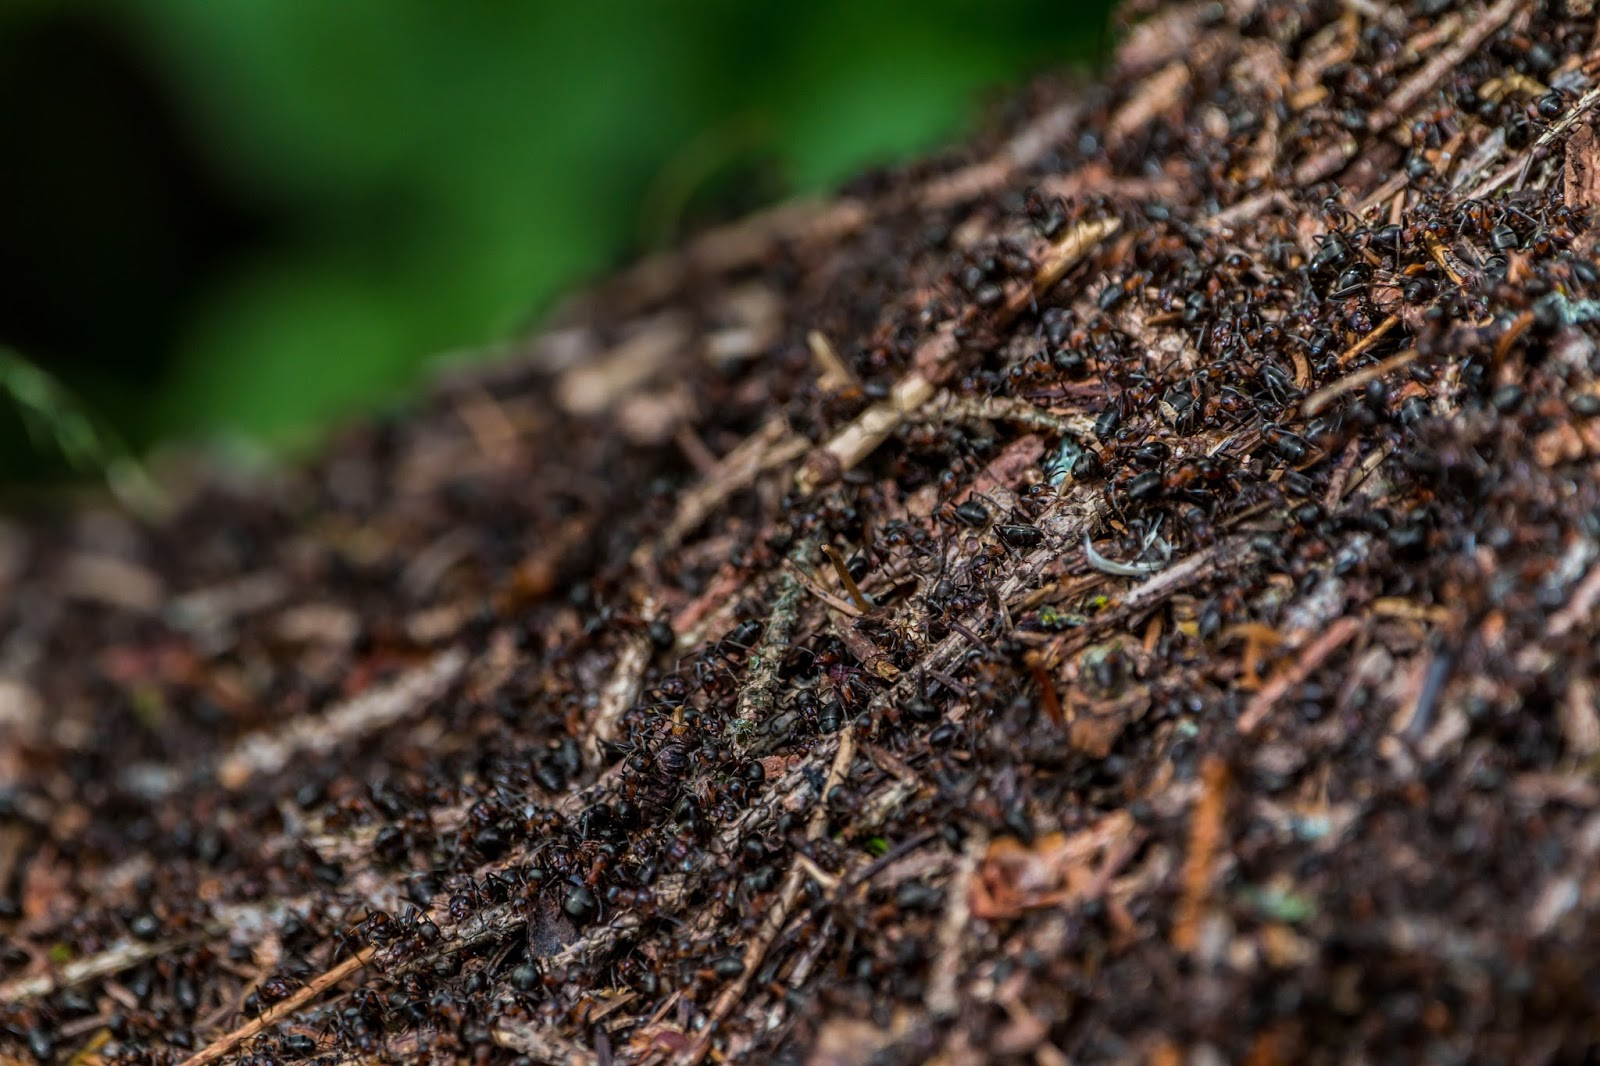 Ants making an anthill.